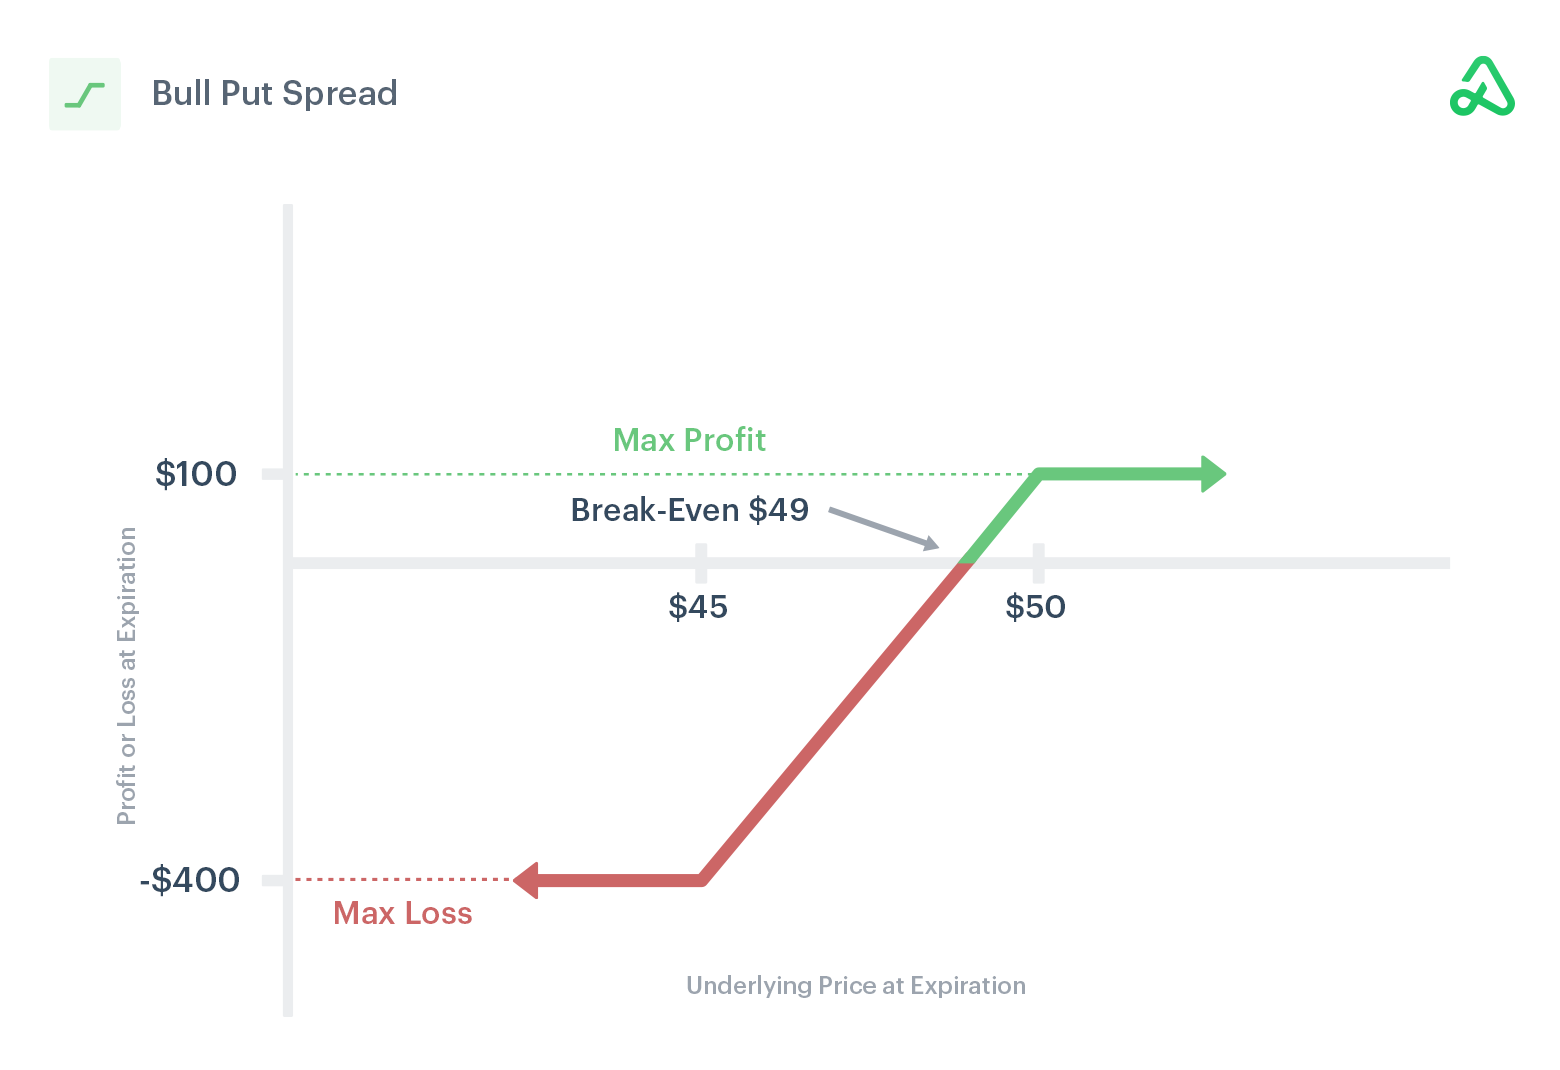 Image of bull put spread payoff diagram showing max profit, max loss, and break-even points